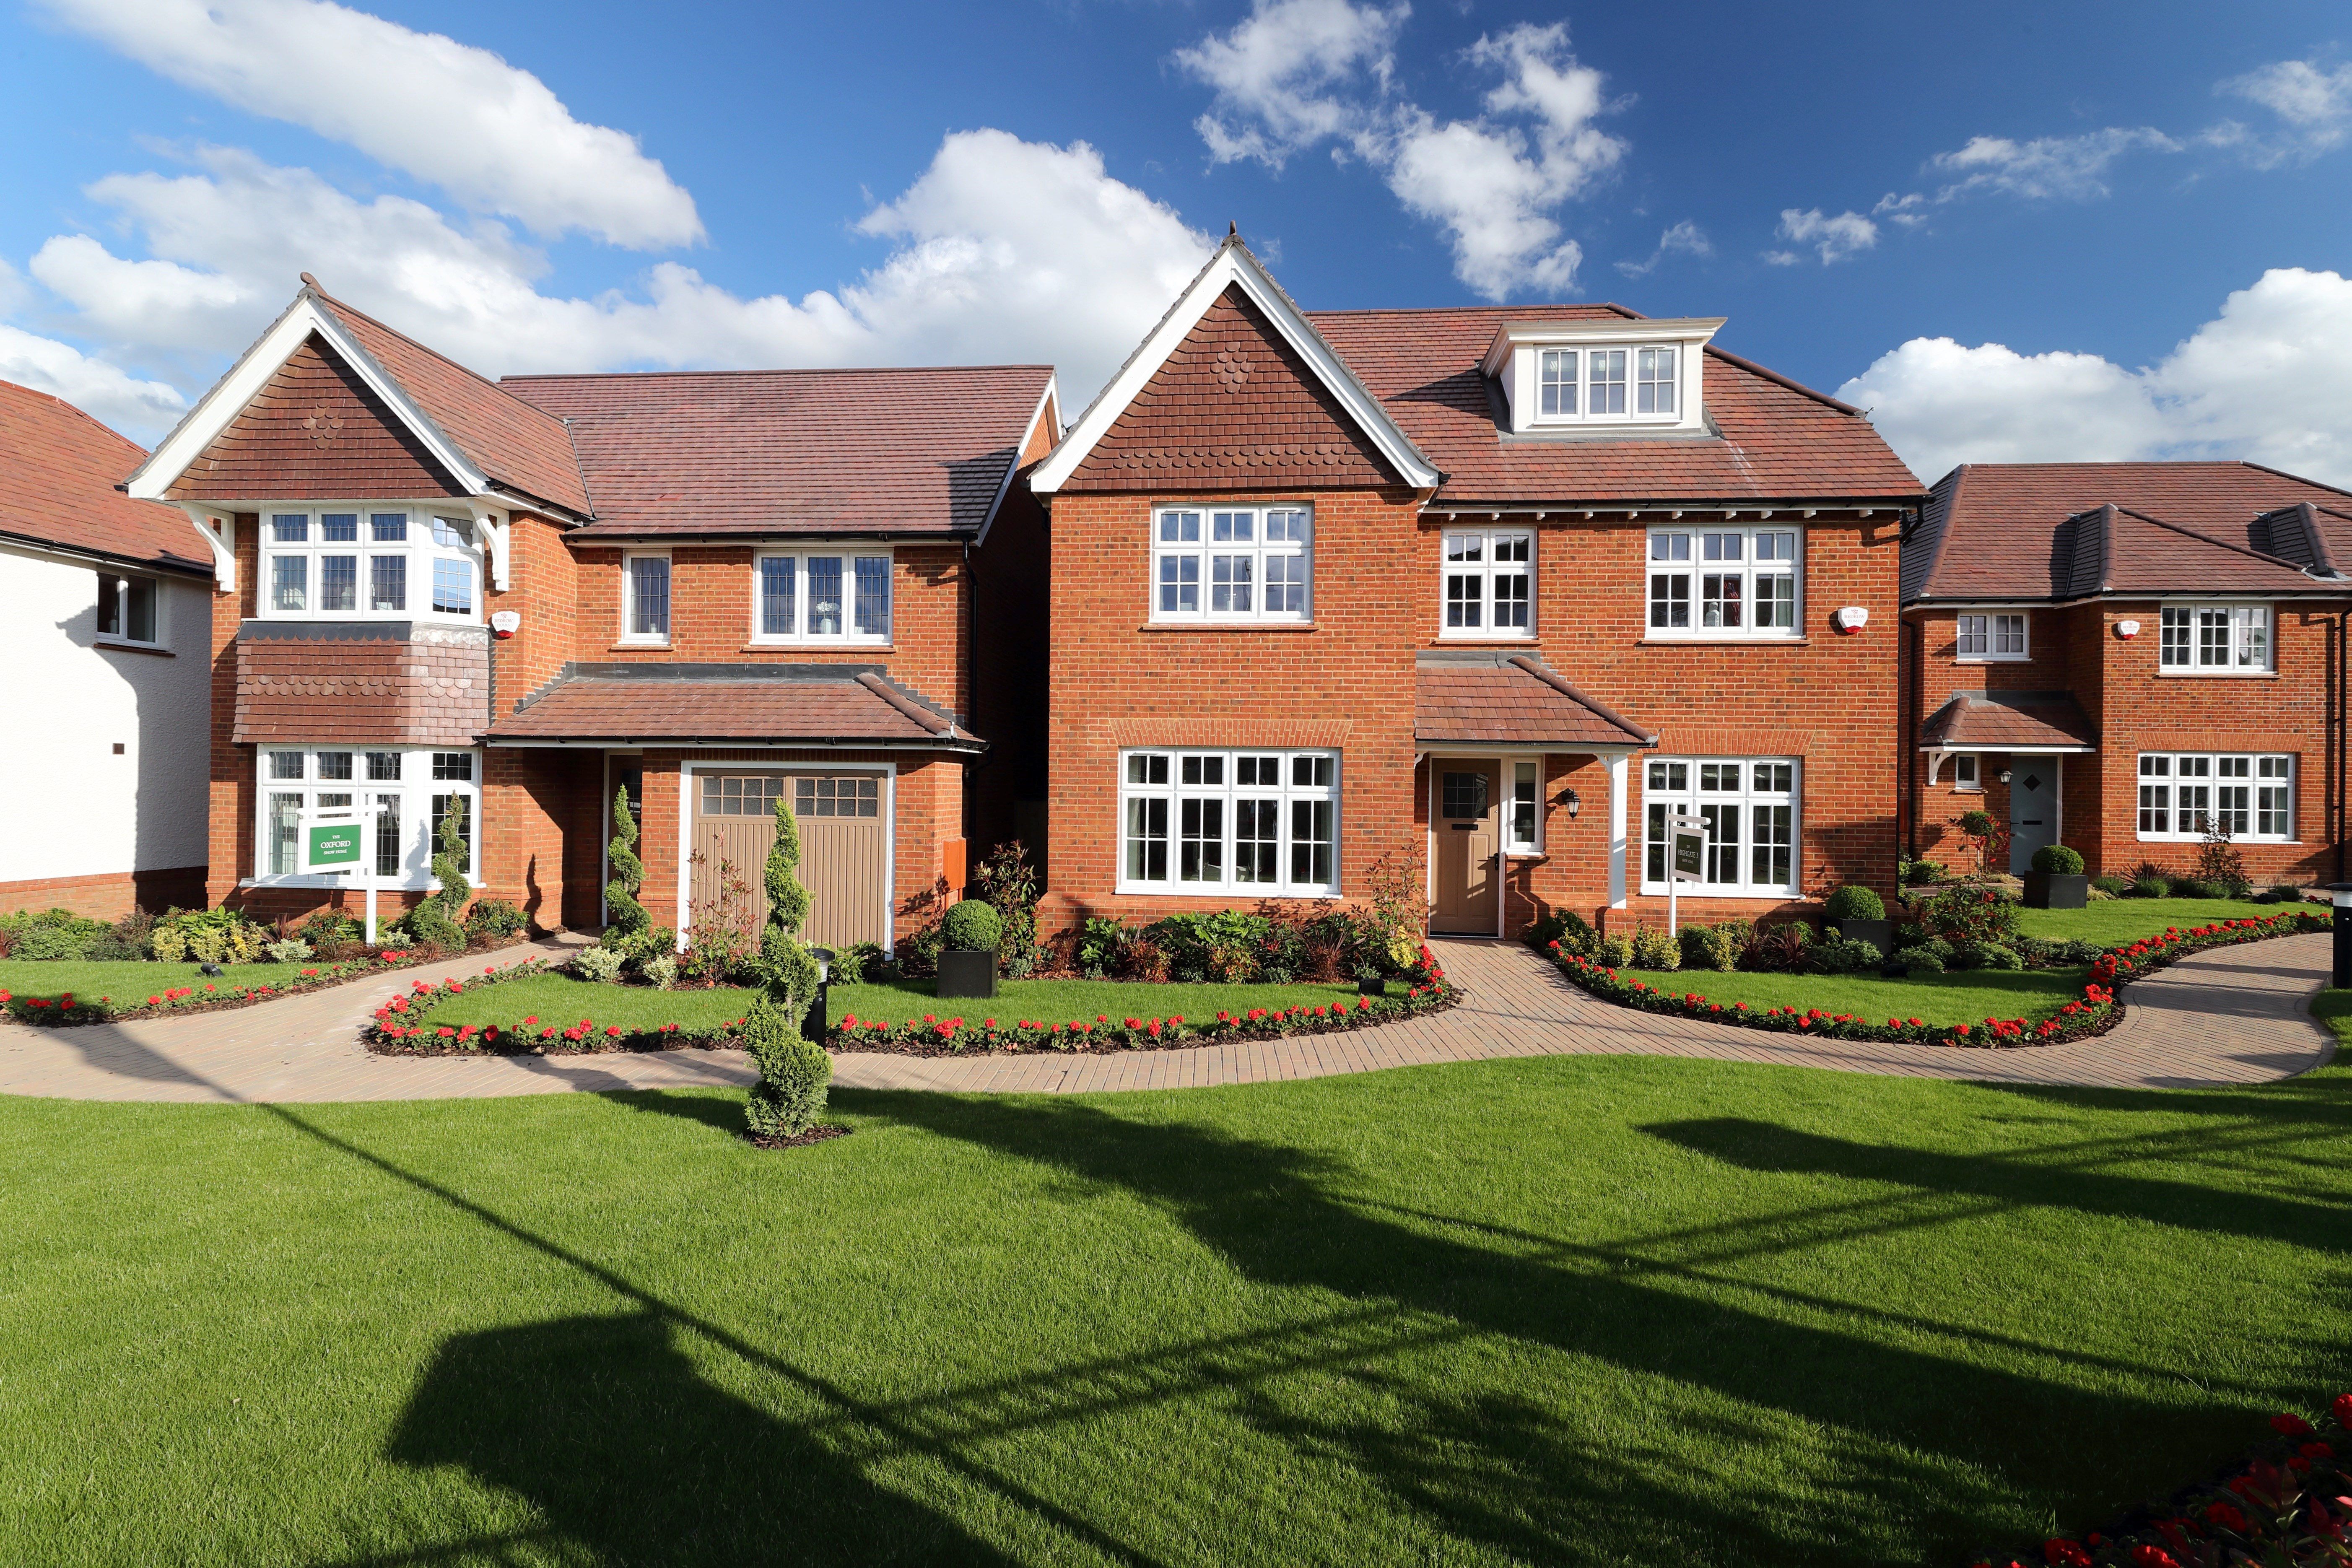 Ebbsfleet garden city redrow homes at ebbsfleet green for Home buliders